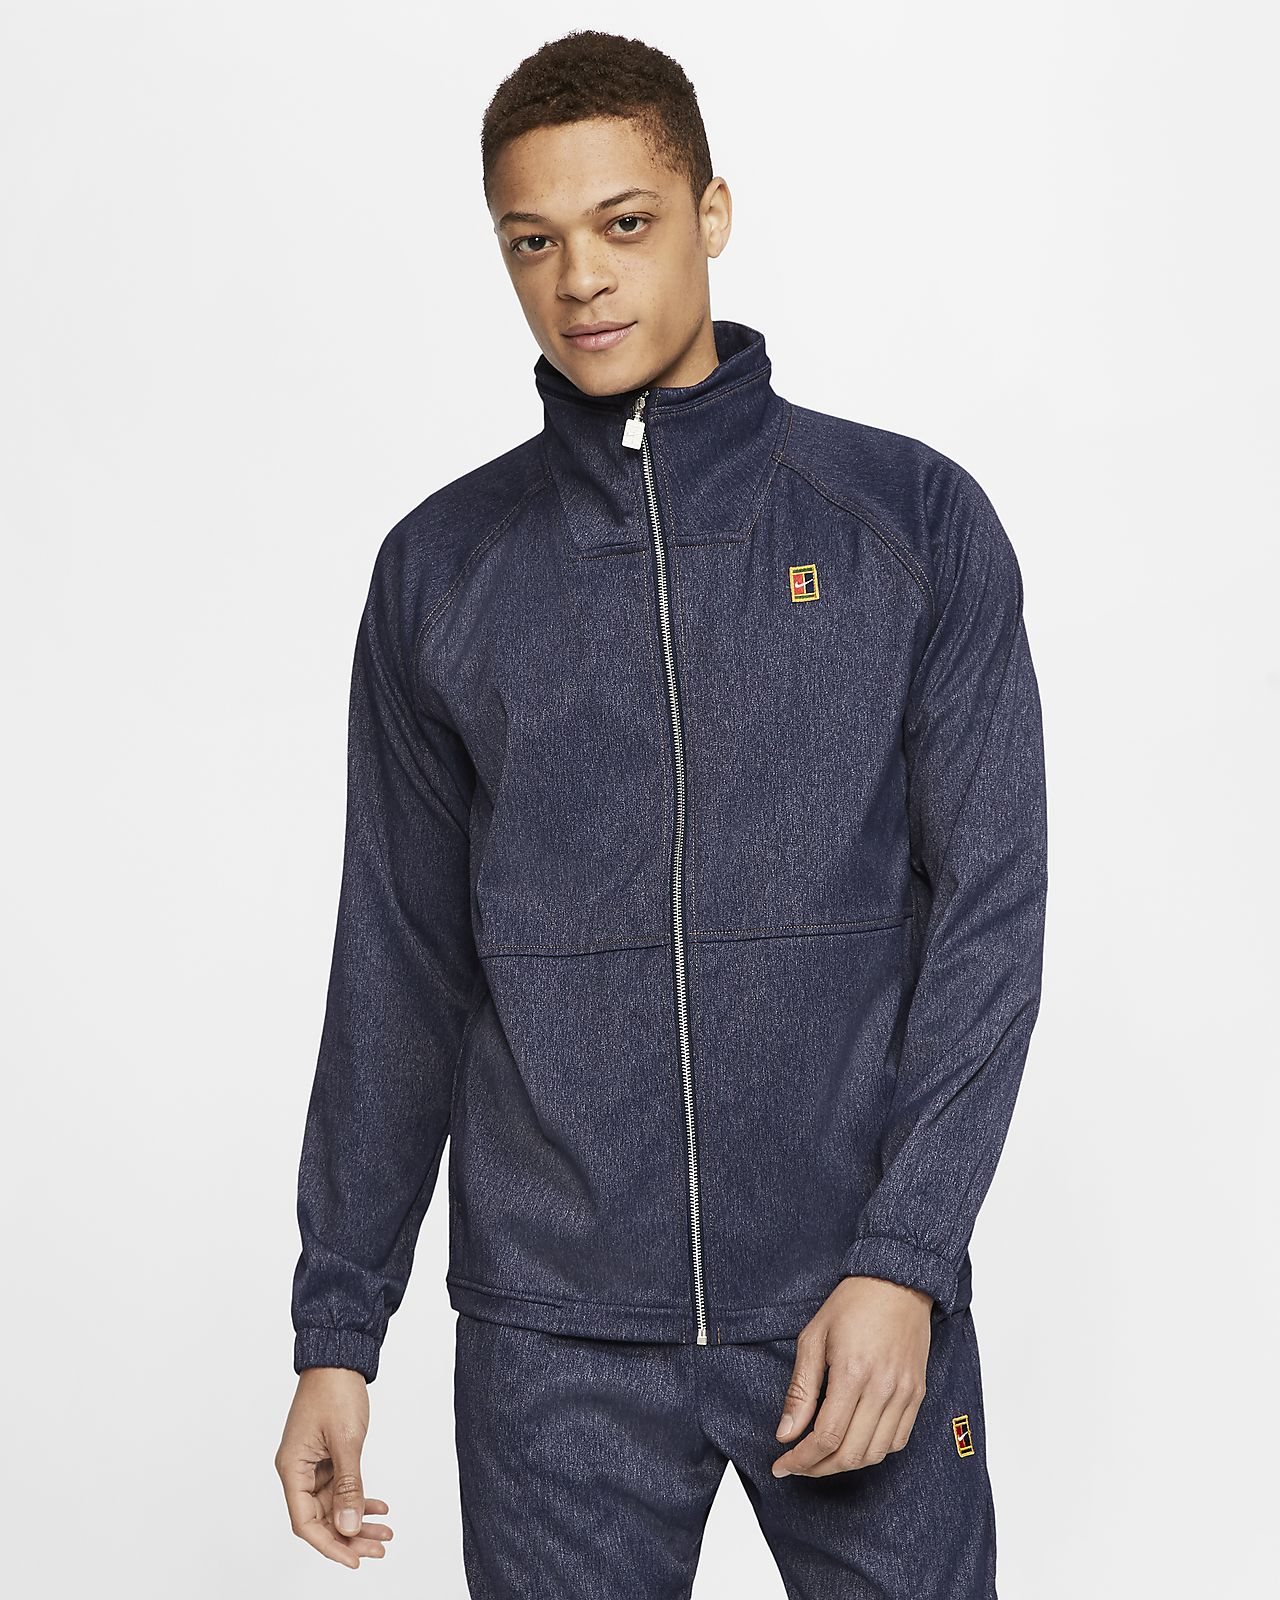 NikeCourt Men's Tennis Warm-Up Jacket